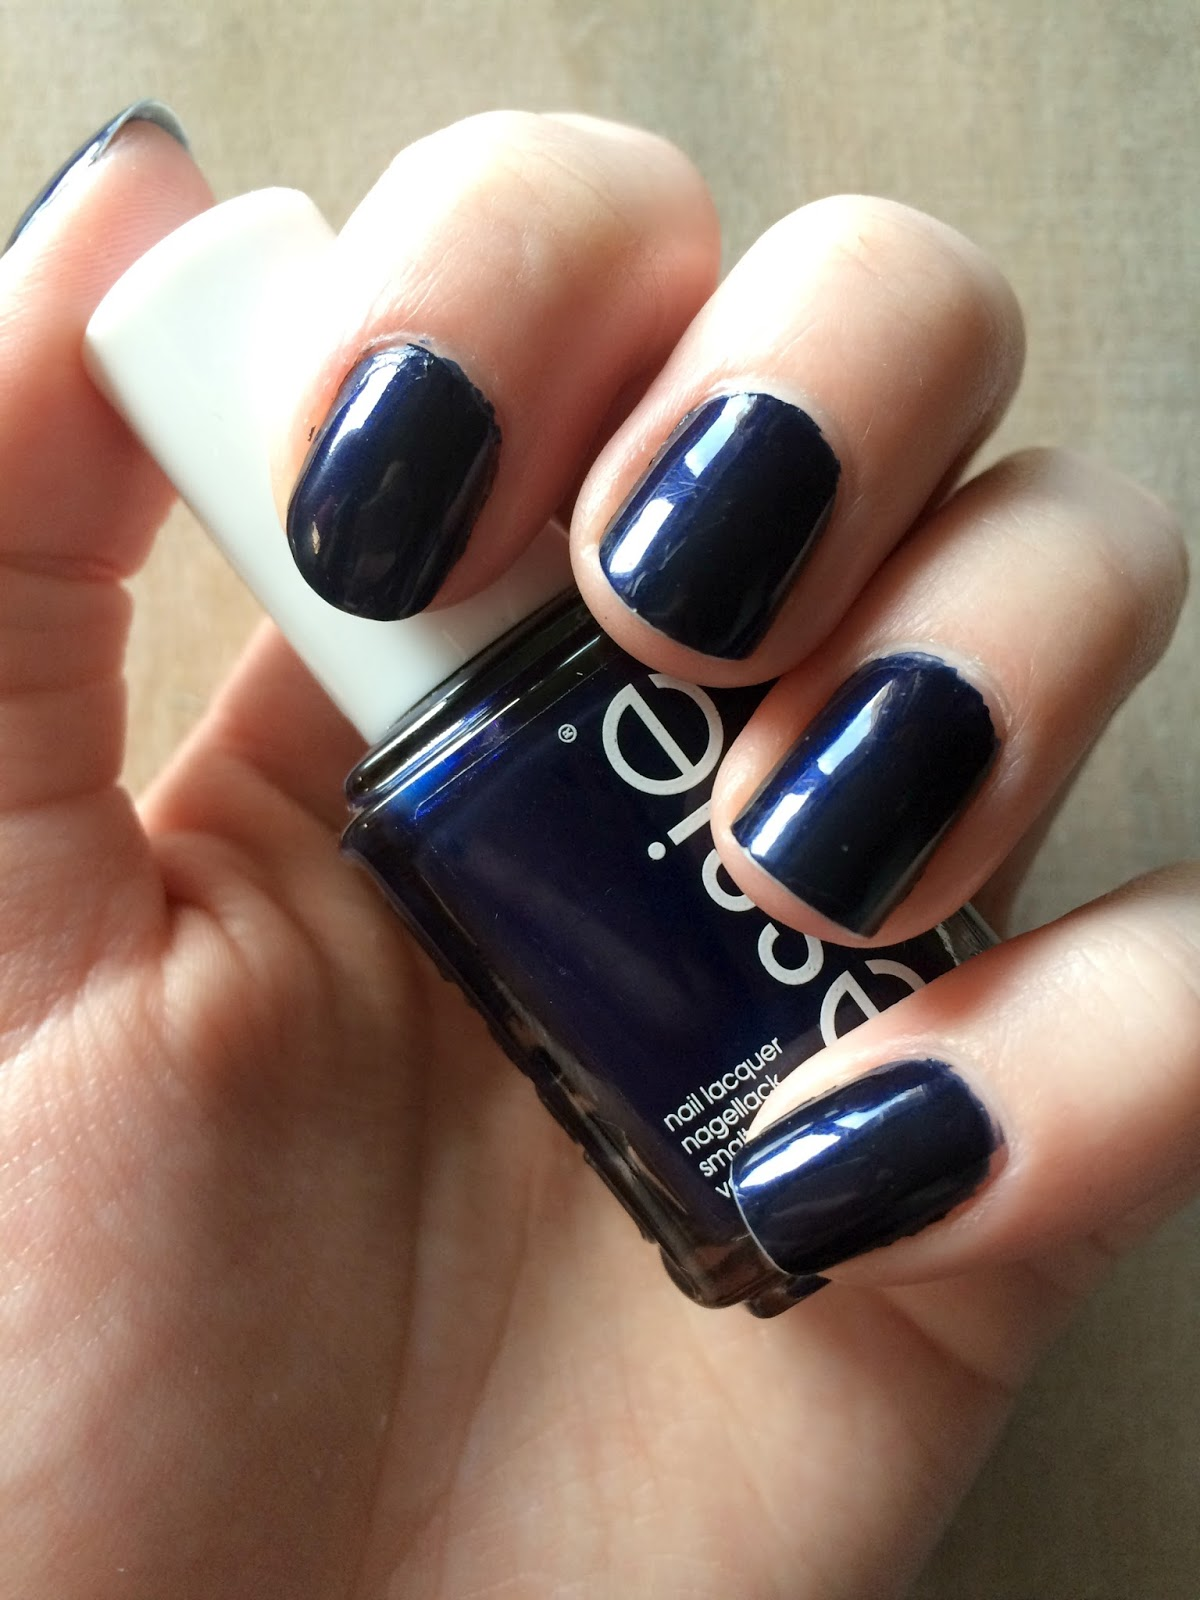 essie midnight cami nailpolish on nails swatched